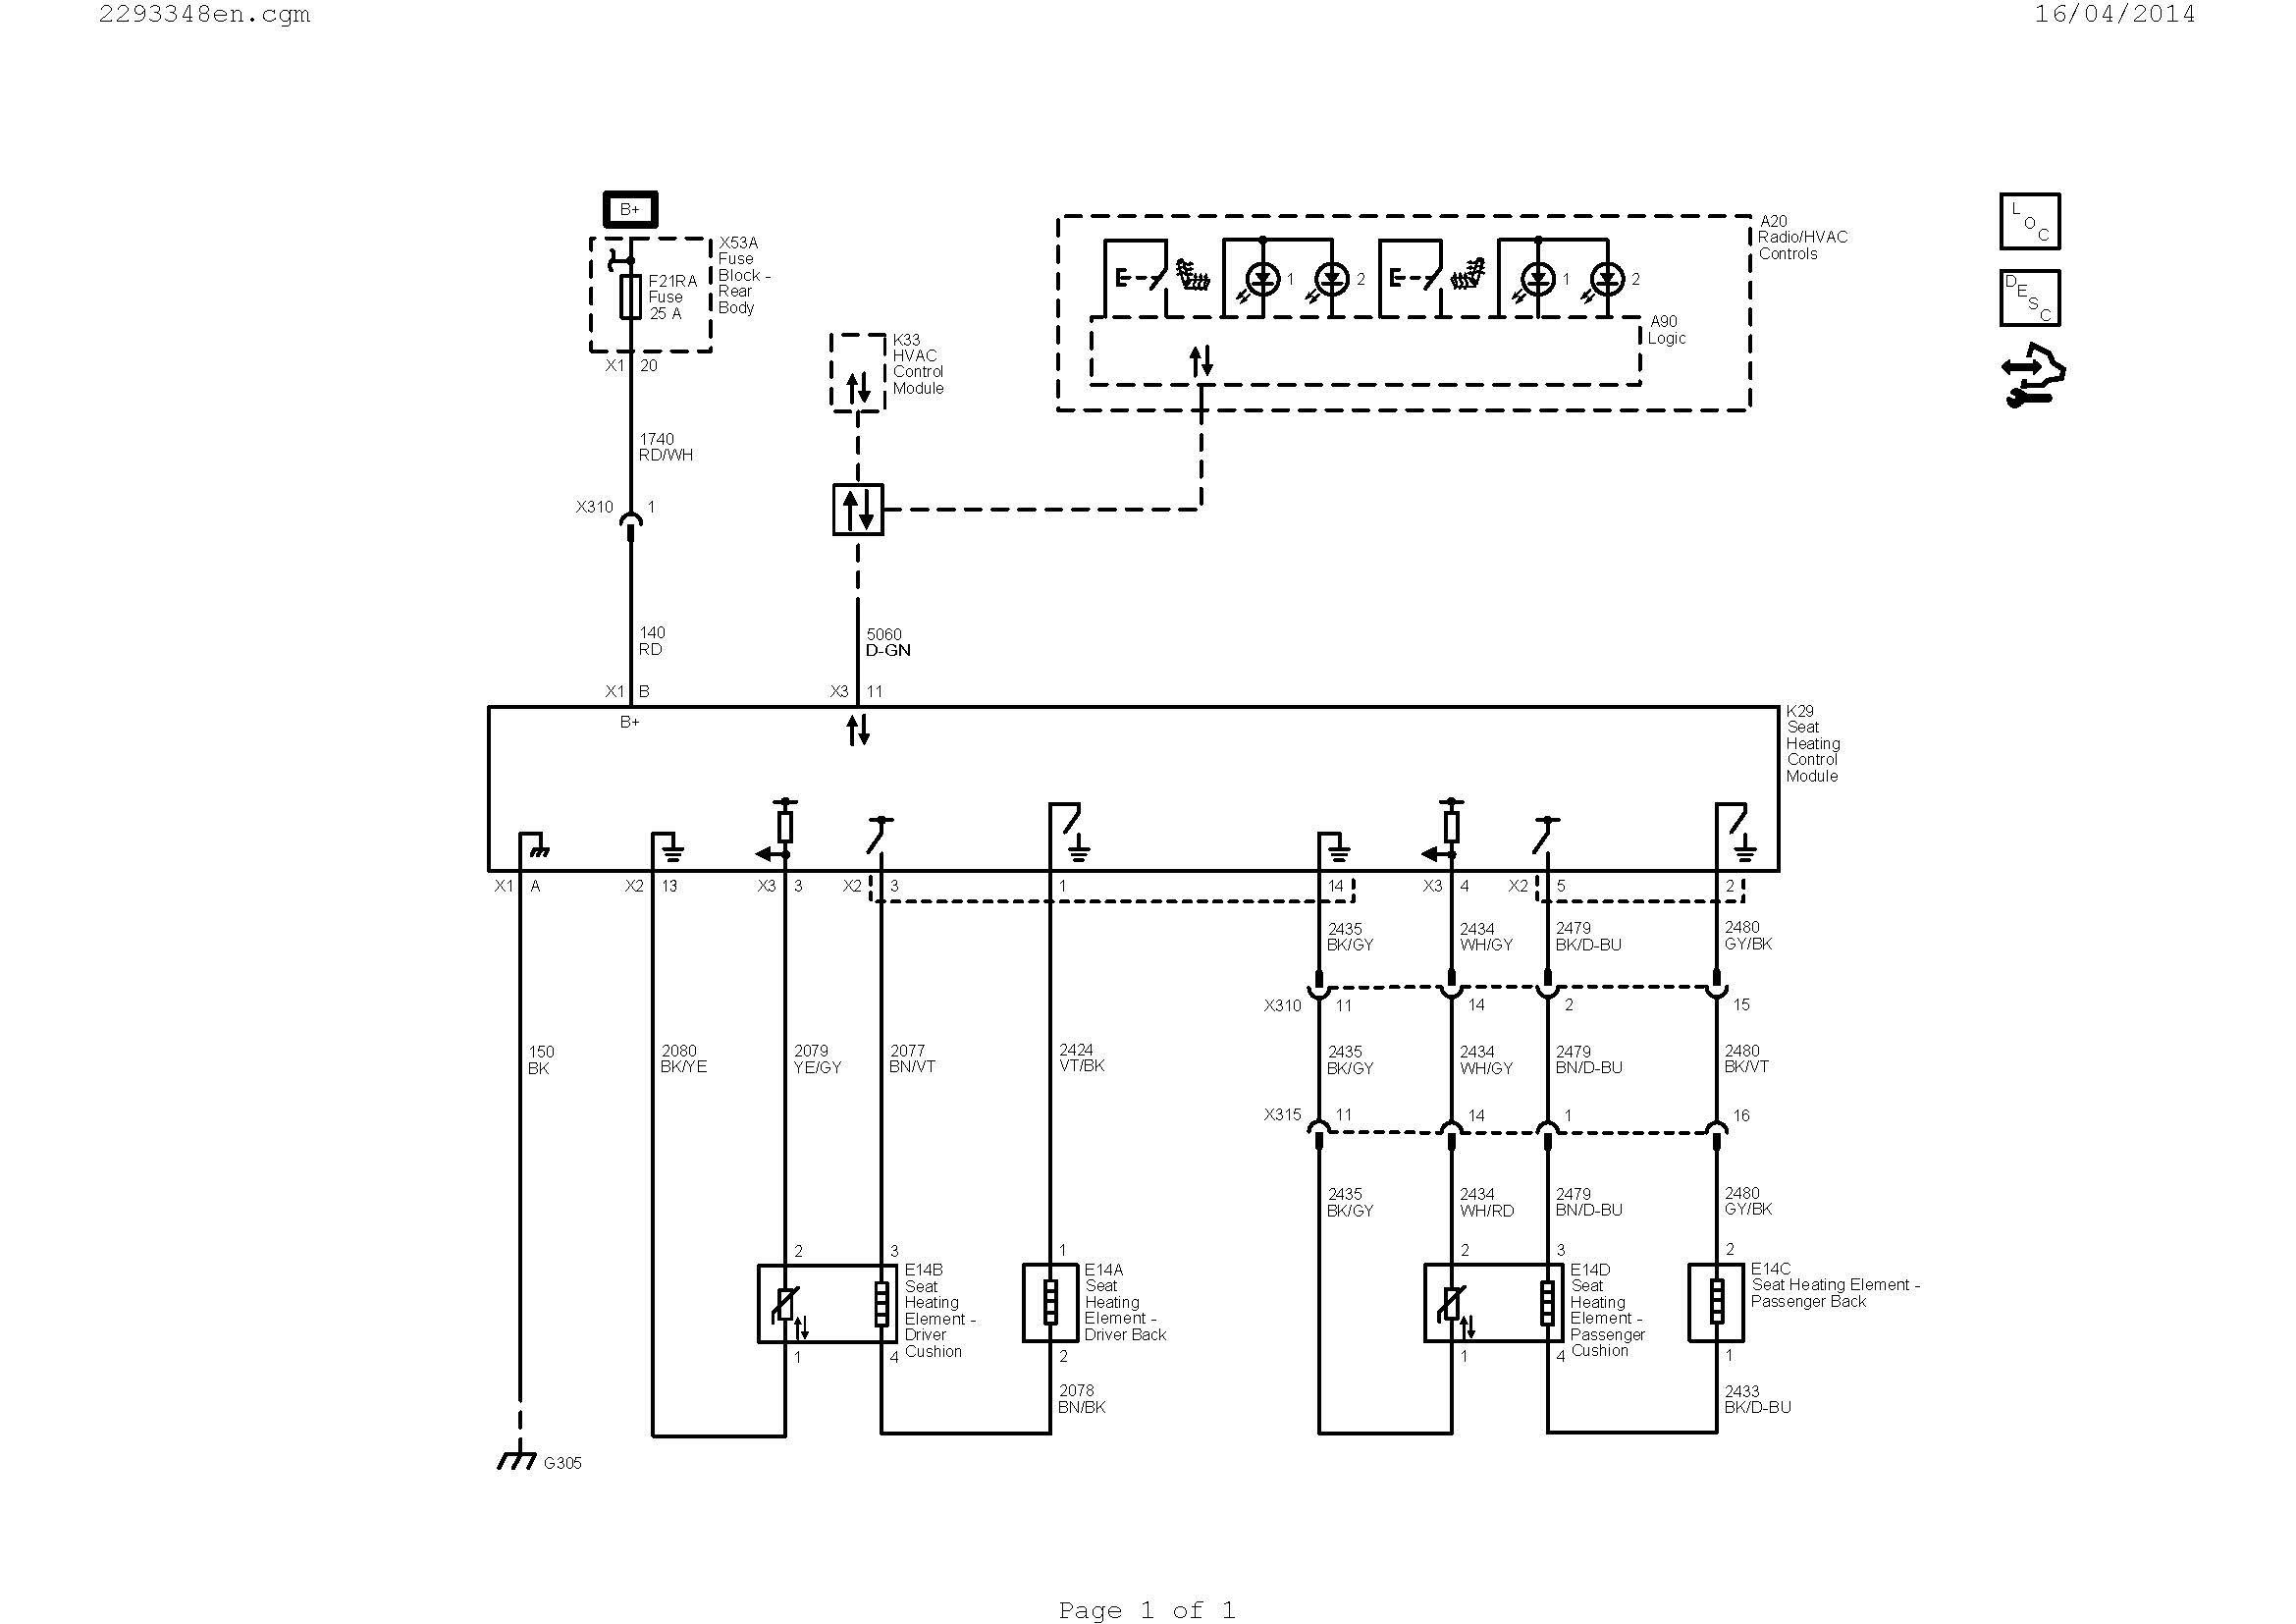 WRG-4838] Harrington Generators Wiring Diagram For on